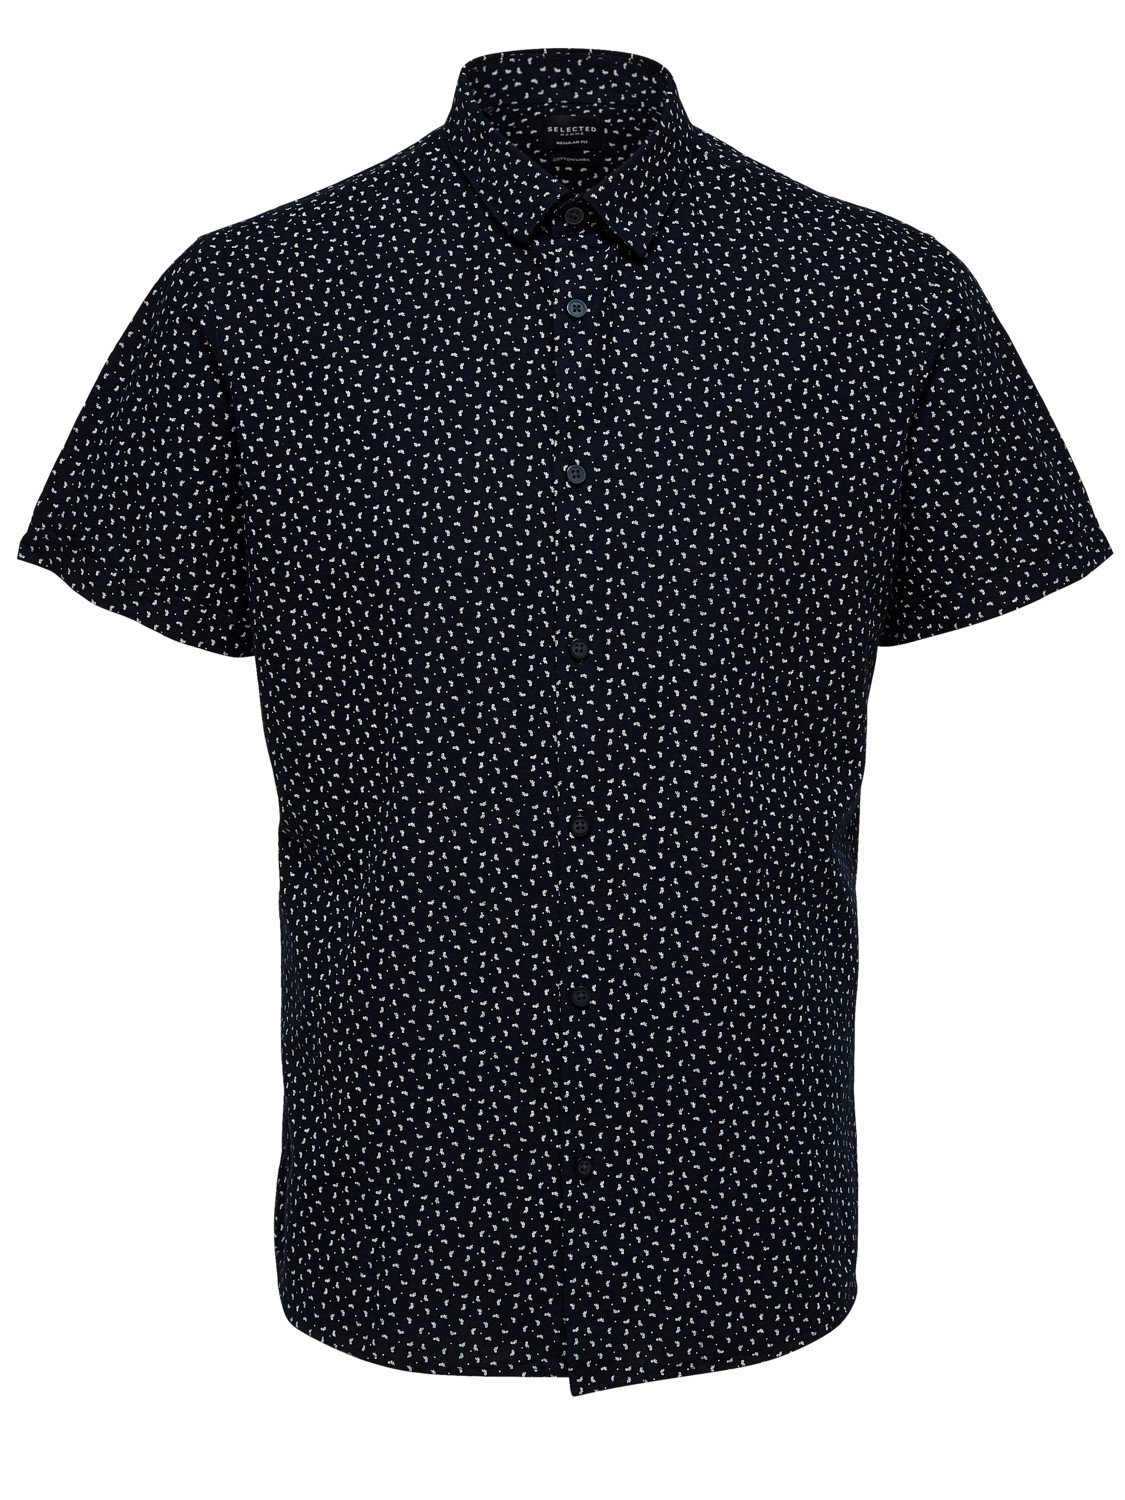 SELECTED SKJORTE - SLHREGLINEN NAVY AOP | GATE 36 Hobro